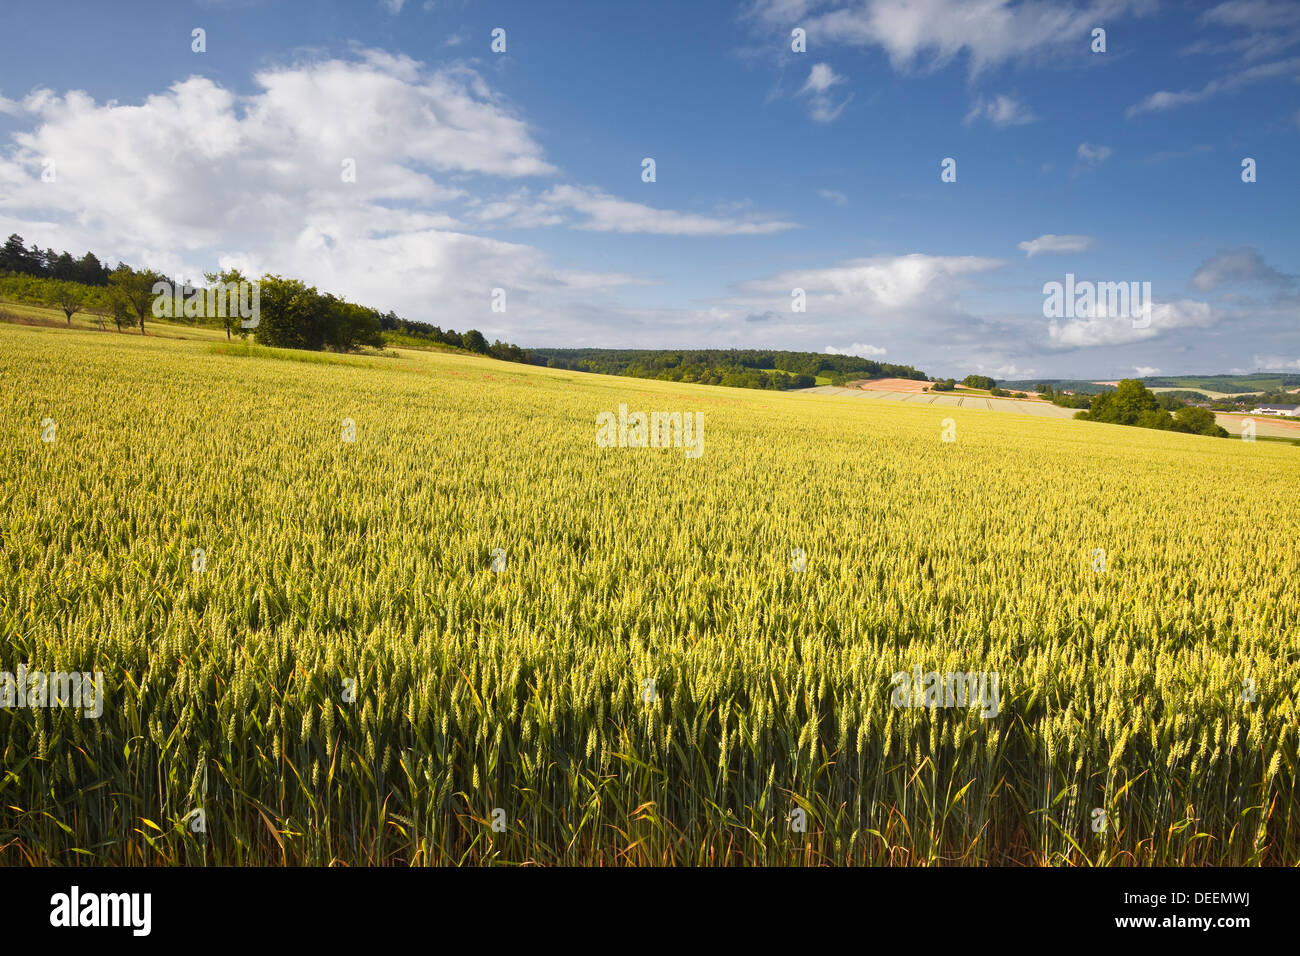 A wheat field in the Champagne area, France, Europe - Stock Image